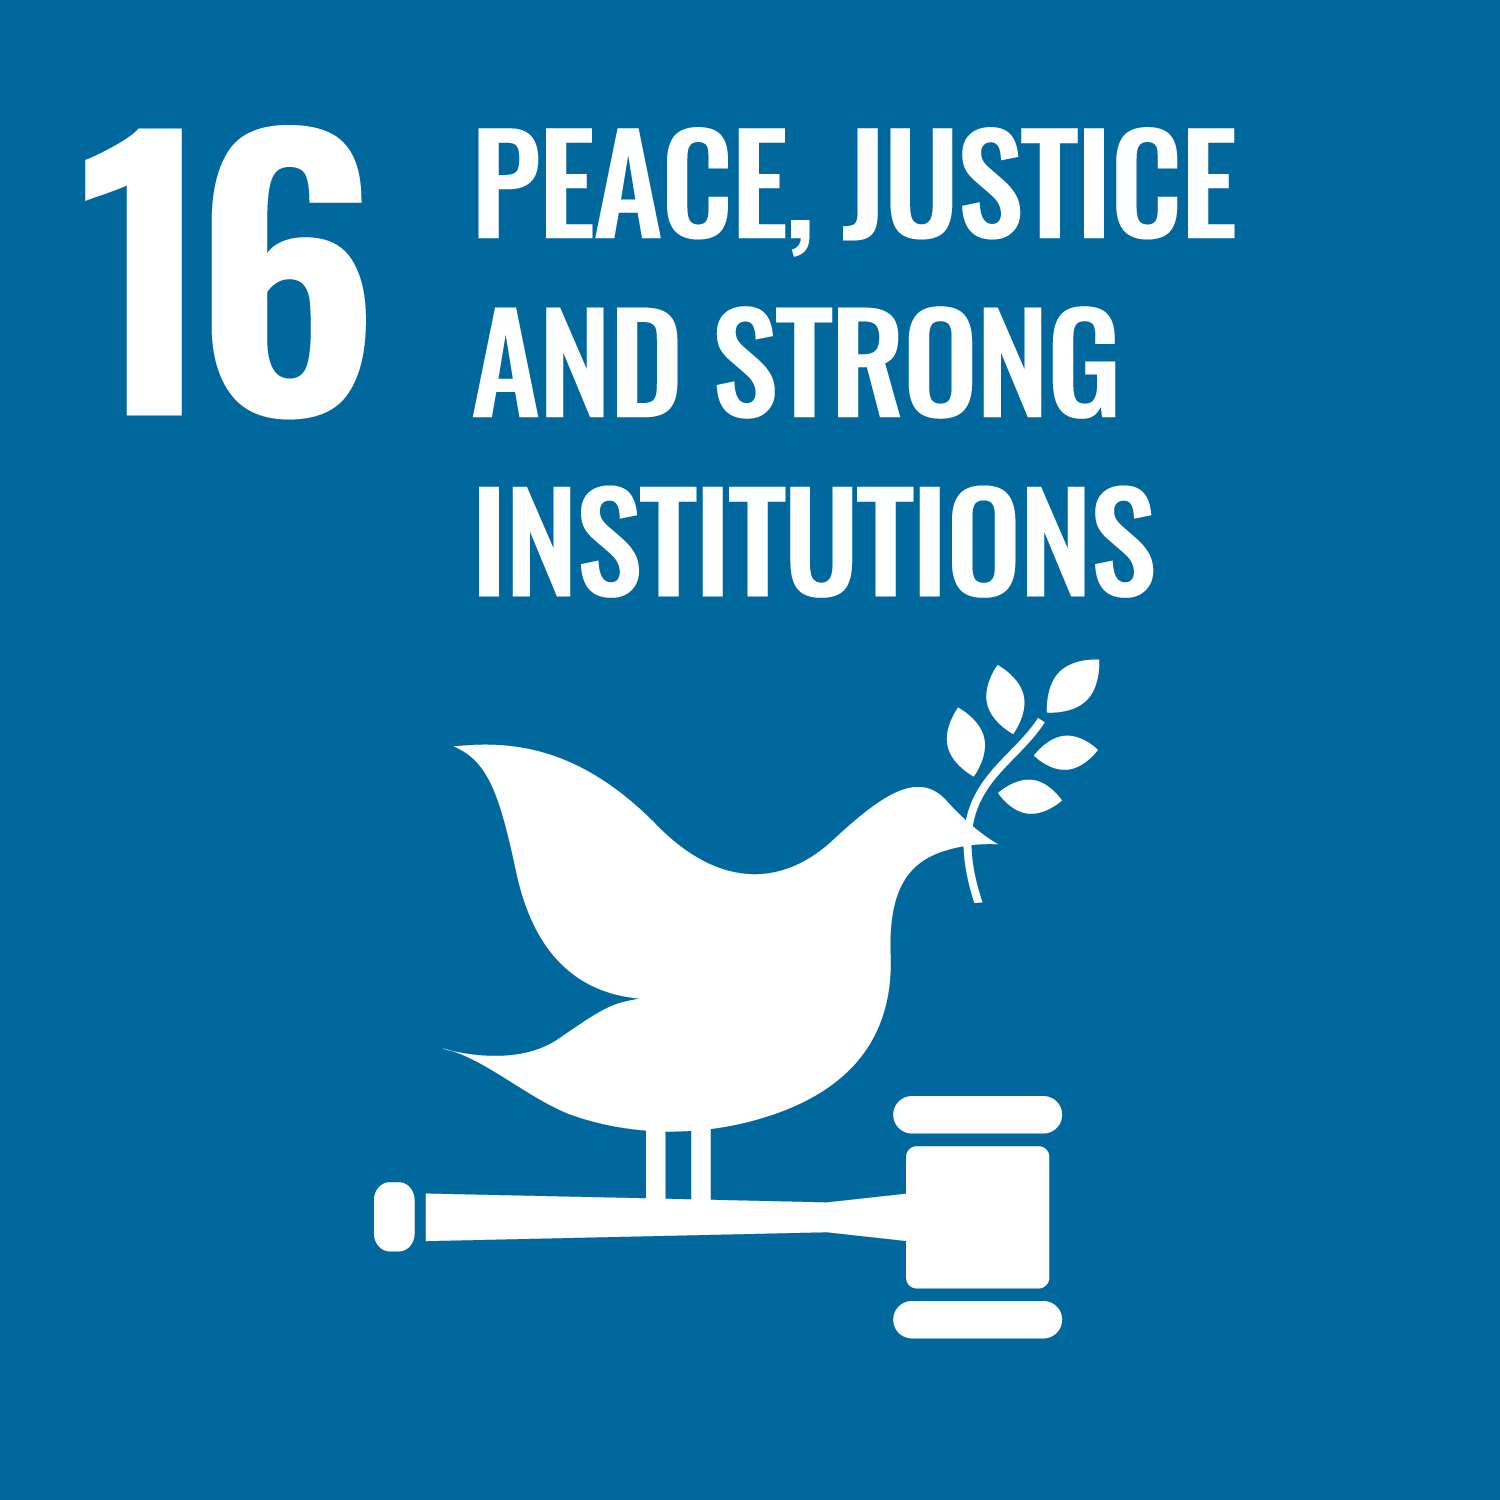 16 PEACE,JUSTICE AND STRONG INSTITUTIONS